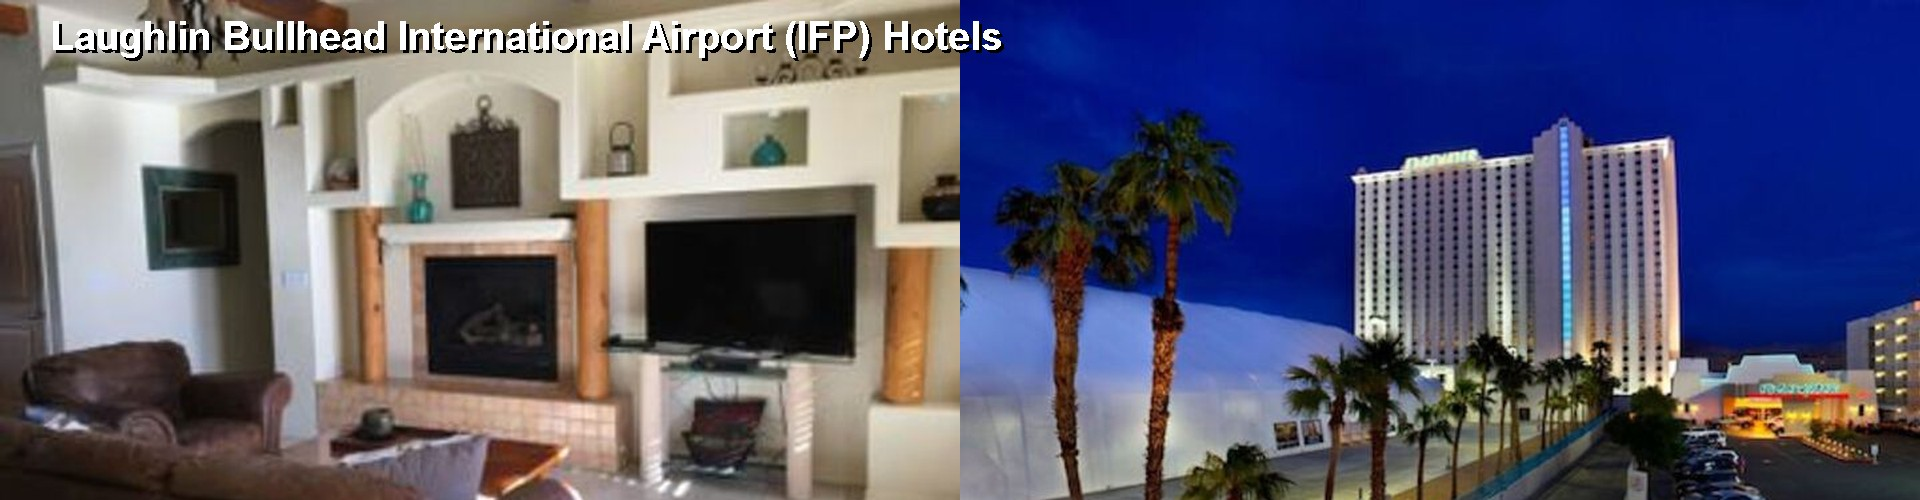 5 Best Hotels near Laughlin Bullhead International Airport (IFP)